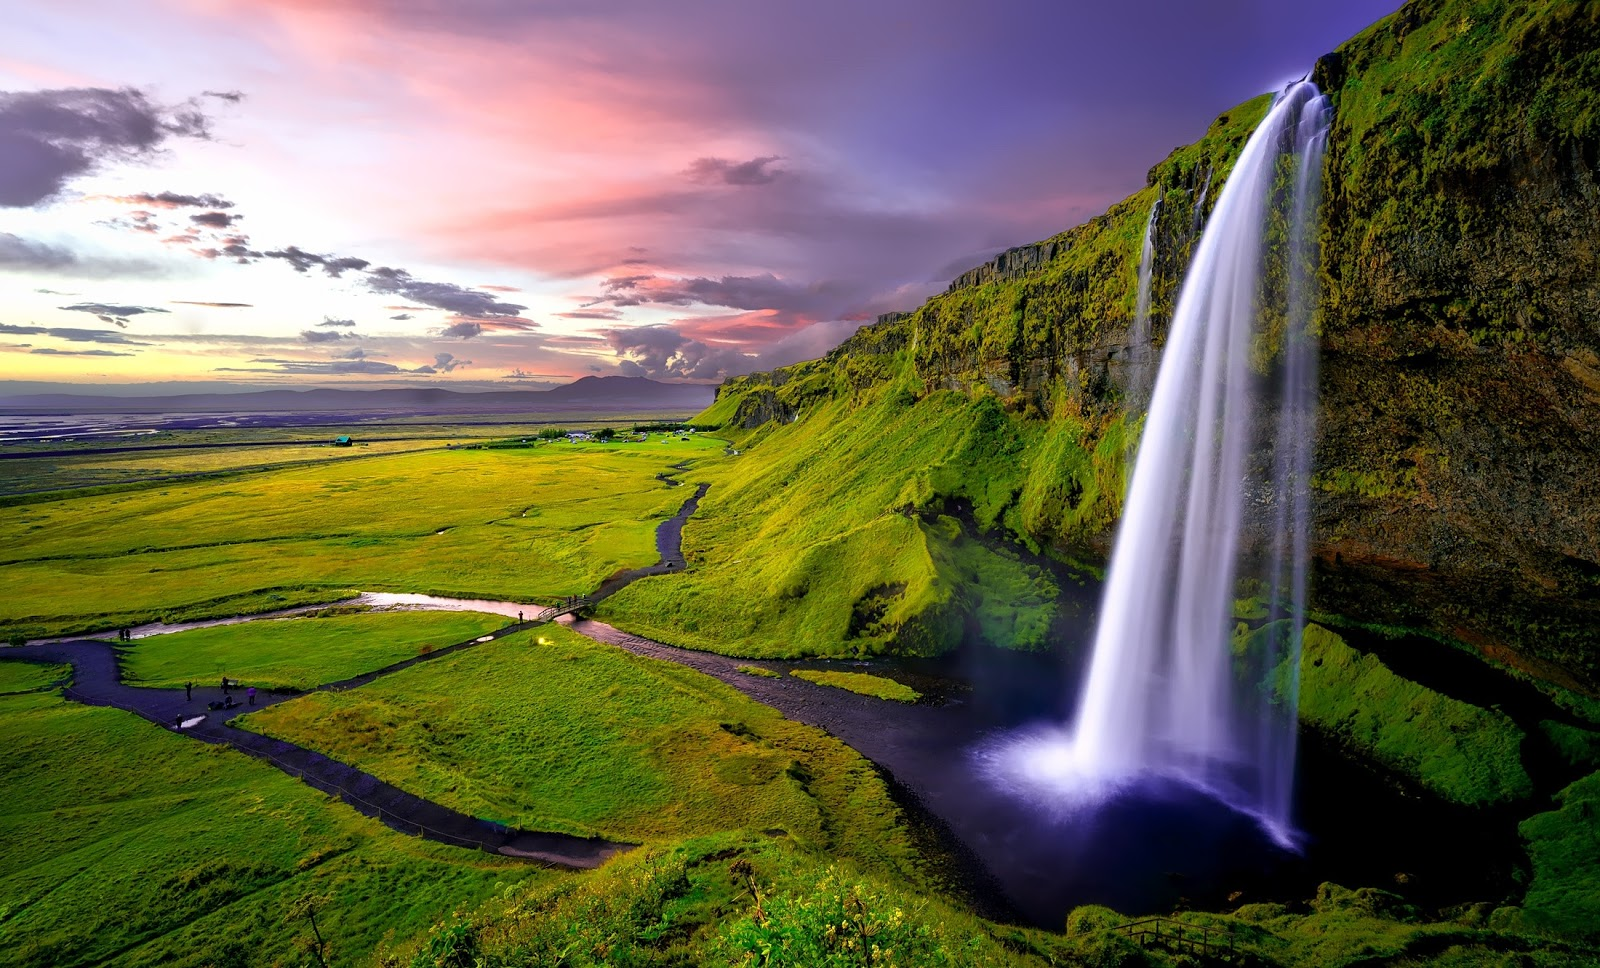 time-lapse-photography-of-waterfalls-during-sunset-nature-pictures